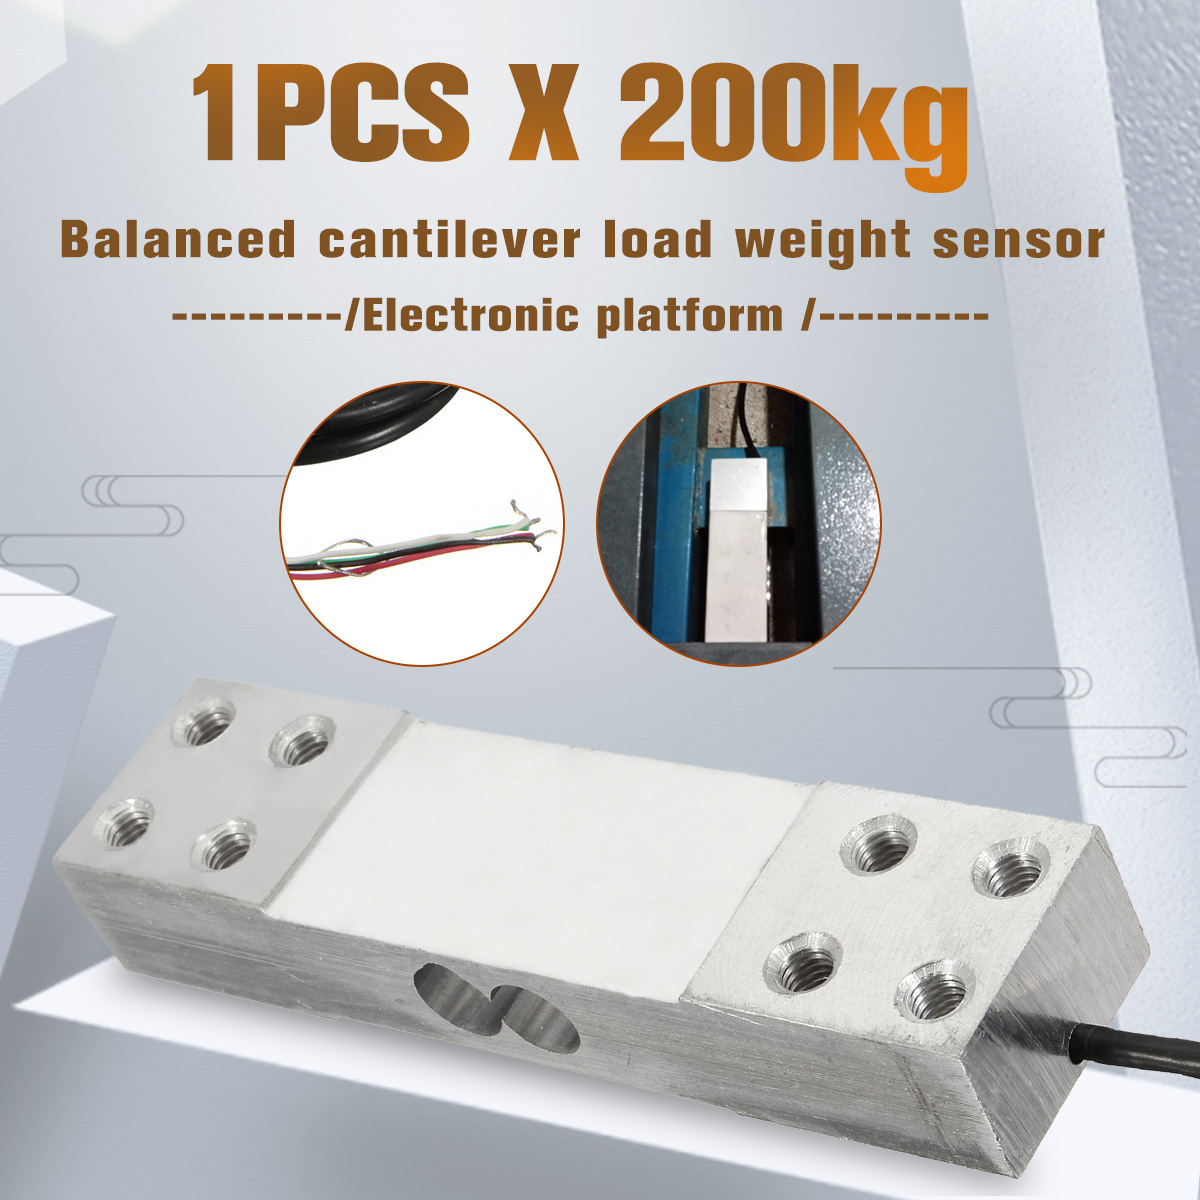 1pcs 200kg Electric Platform Scale Load Cells Pressure Sensor Cantilever Load Weight Sensor Measurement Tools New Arrival 2020